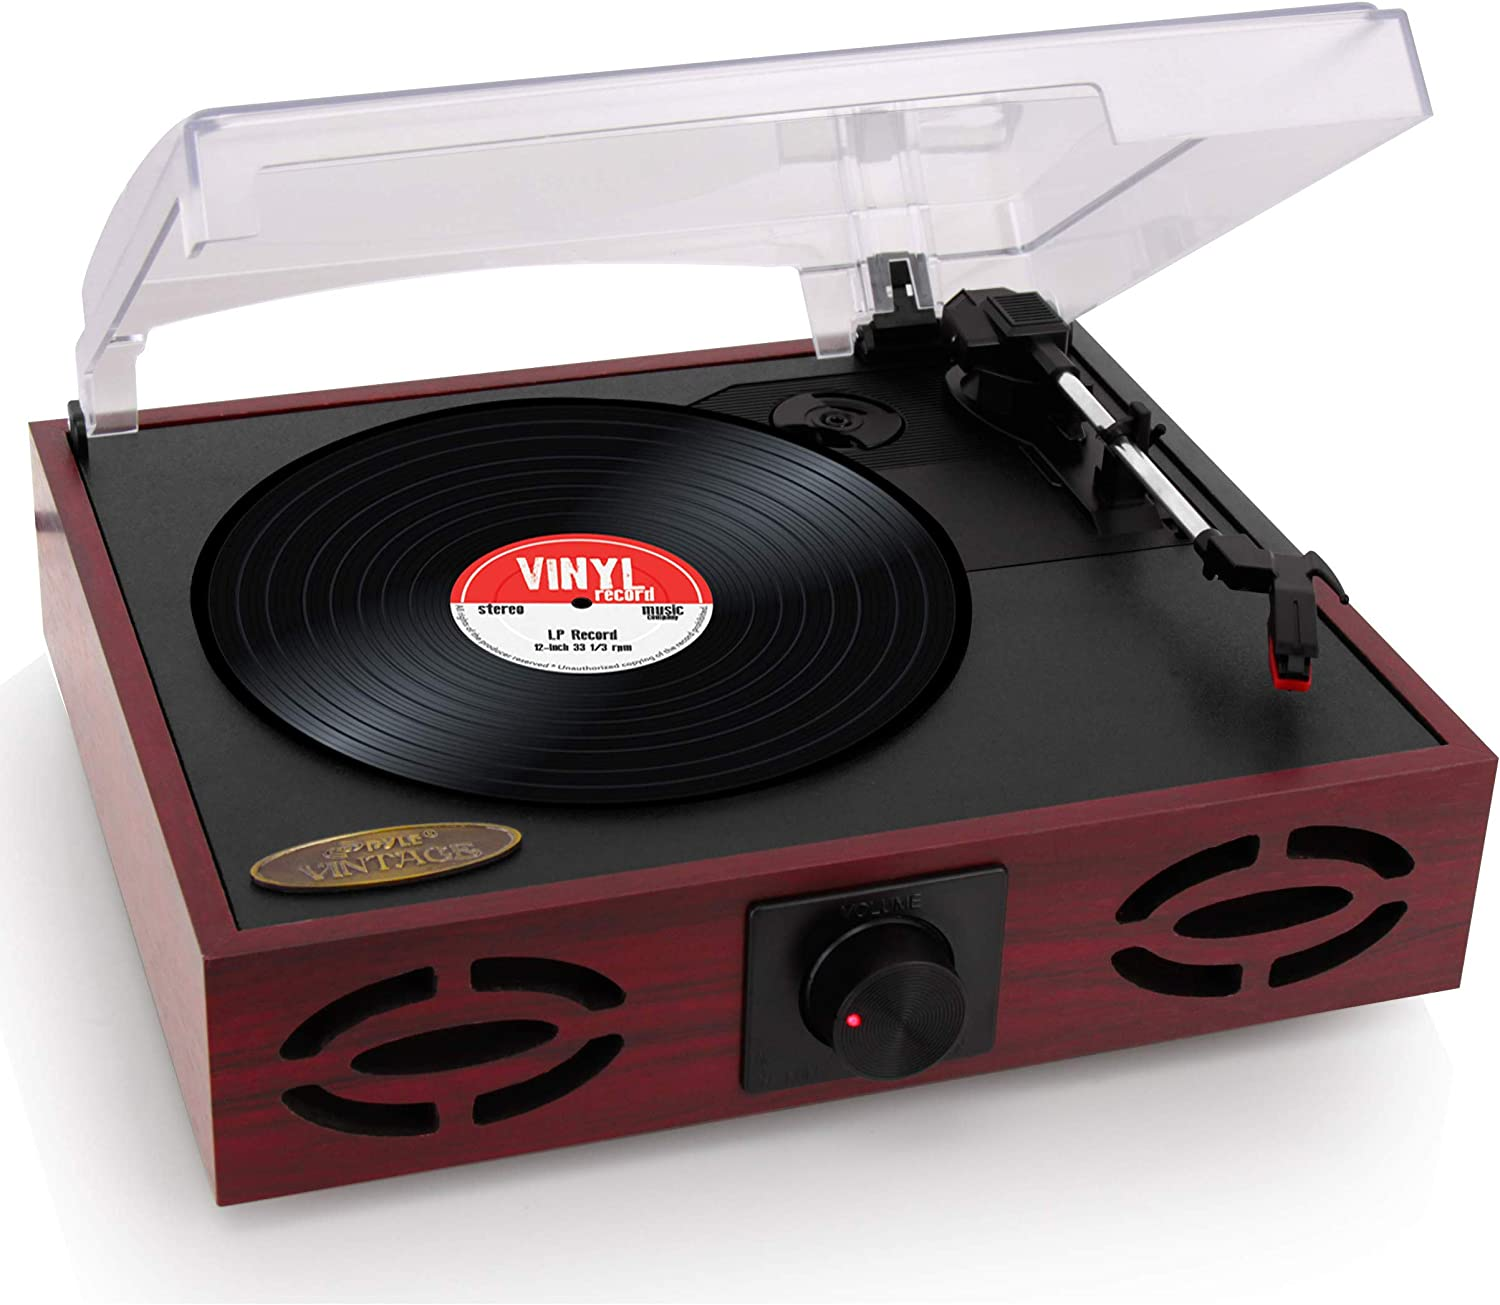 Pyle 3-Speed Stereo Turntable, Classic Vintage Style, Vinyl Record Player, Supports Vinyl to MP3 Recording, with Two Built-in Full Range Speakers. (PVNT7U)